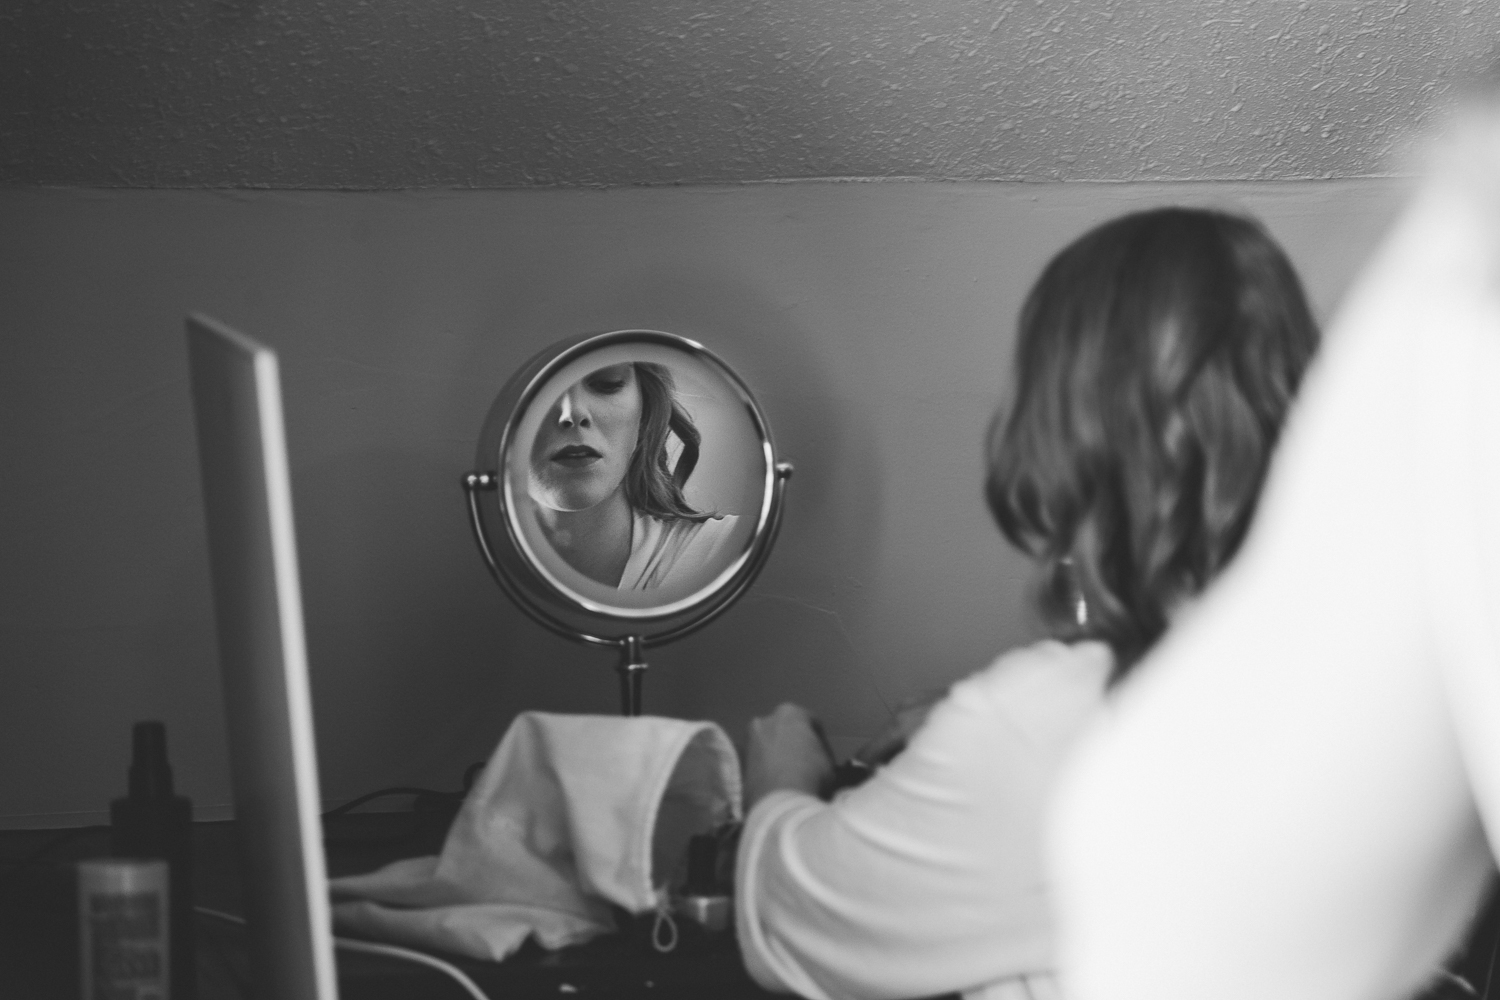 lethbridge-wedding-photographer-love-and-be-loved-photography-dan-tynnea-picture-image-photo-17.jpg